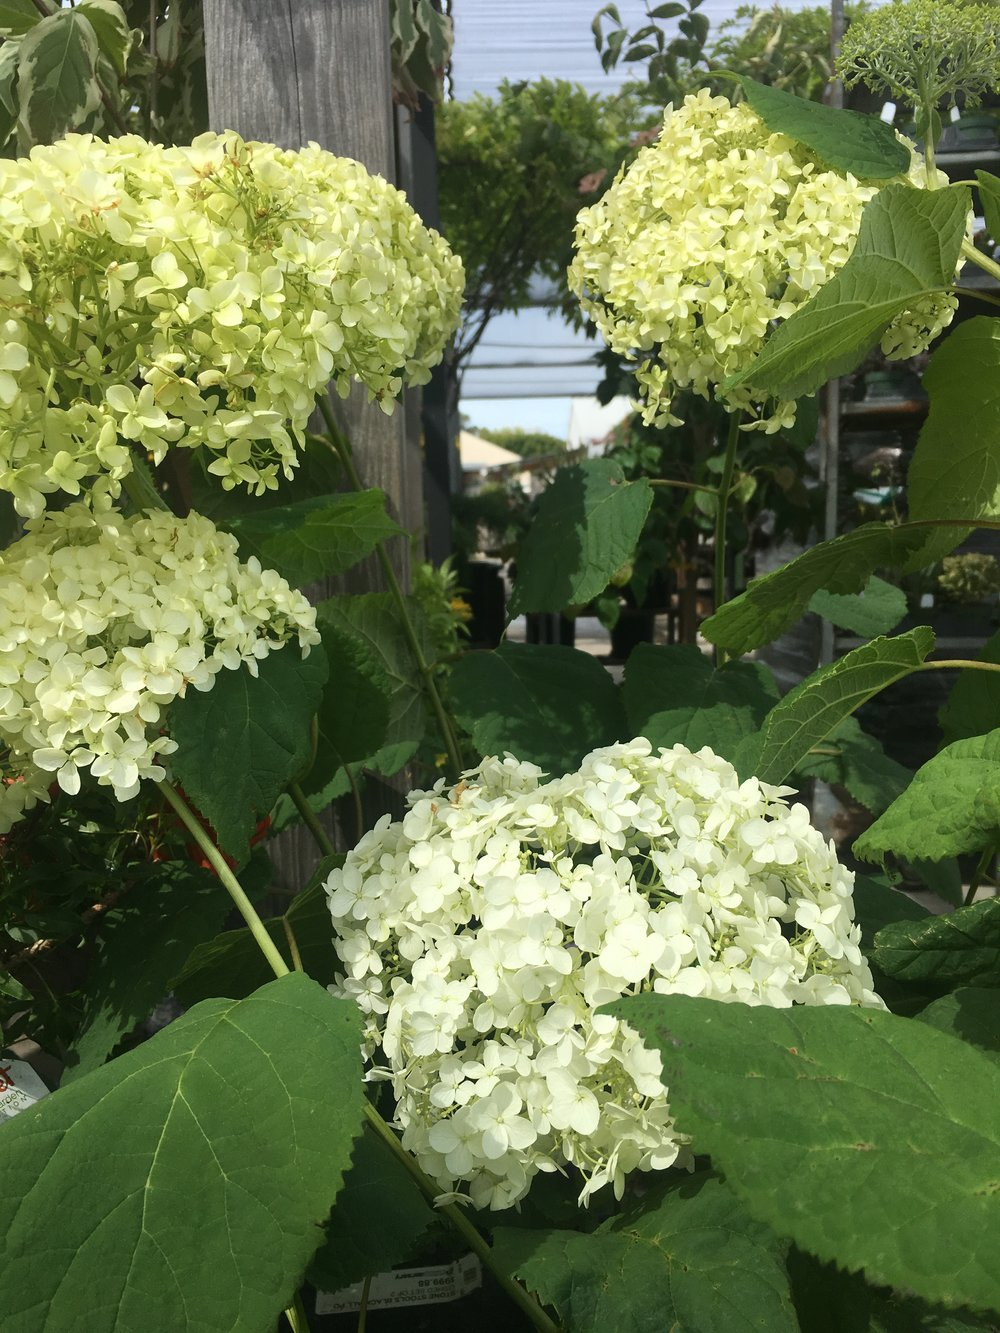 came across some annabell hydrangea in full bloom!